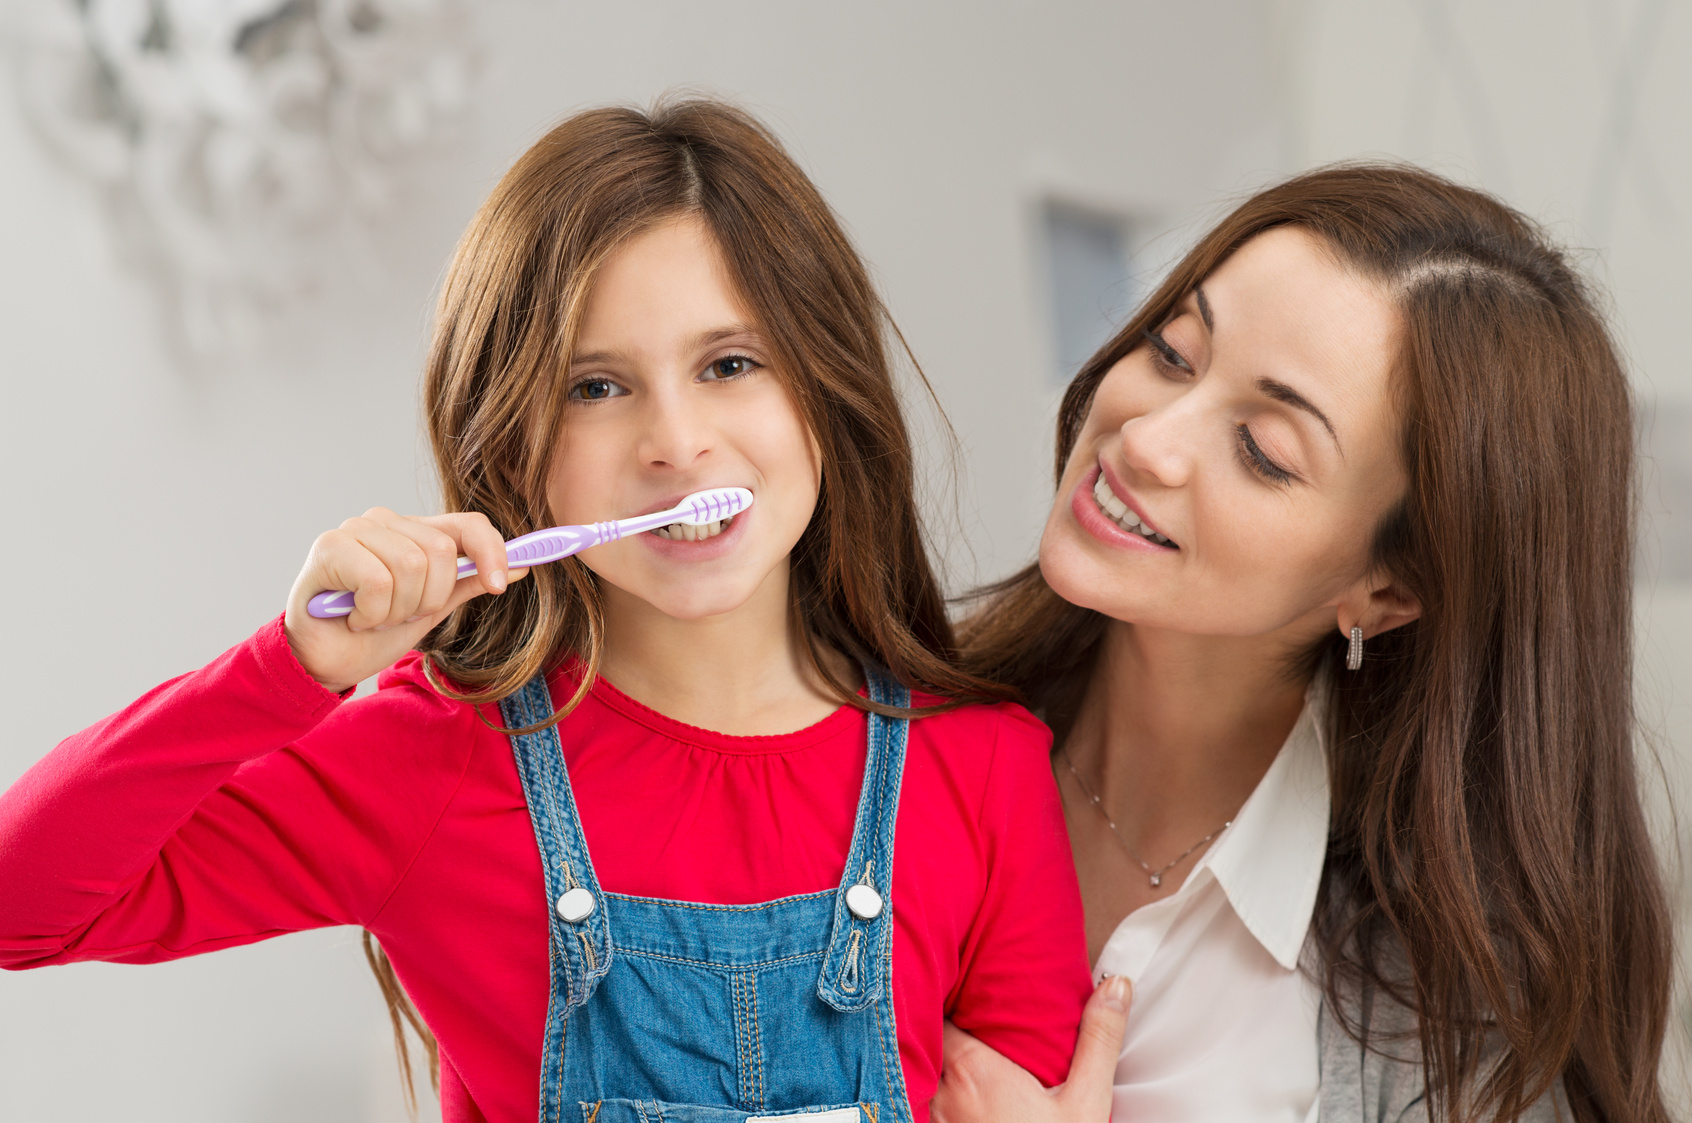 Our Placerville dentists encourage parents to help and monitor their children's oral hygiene routine.